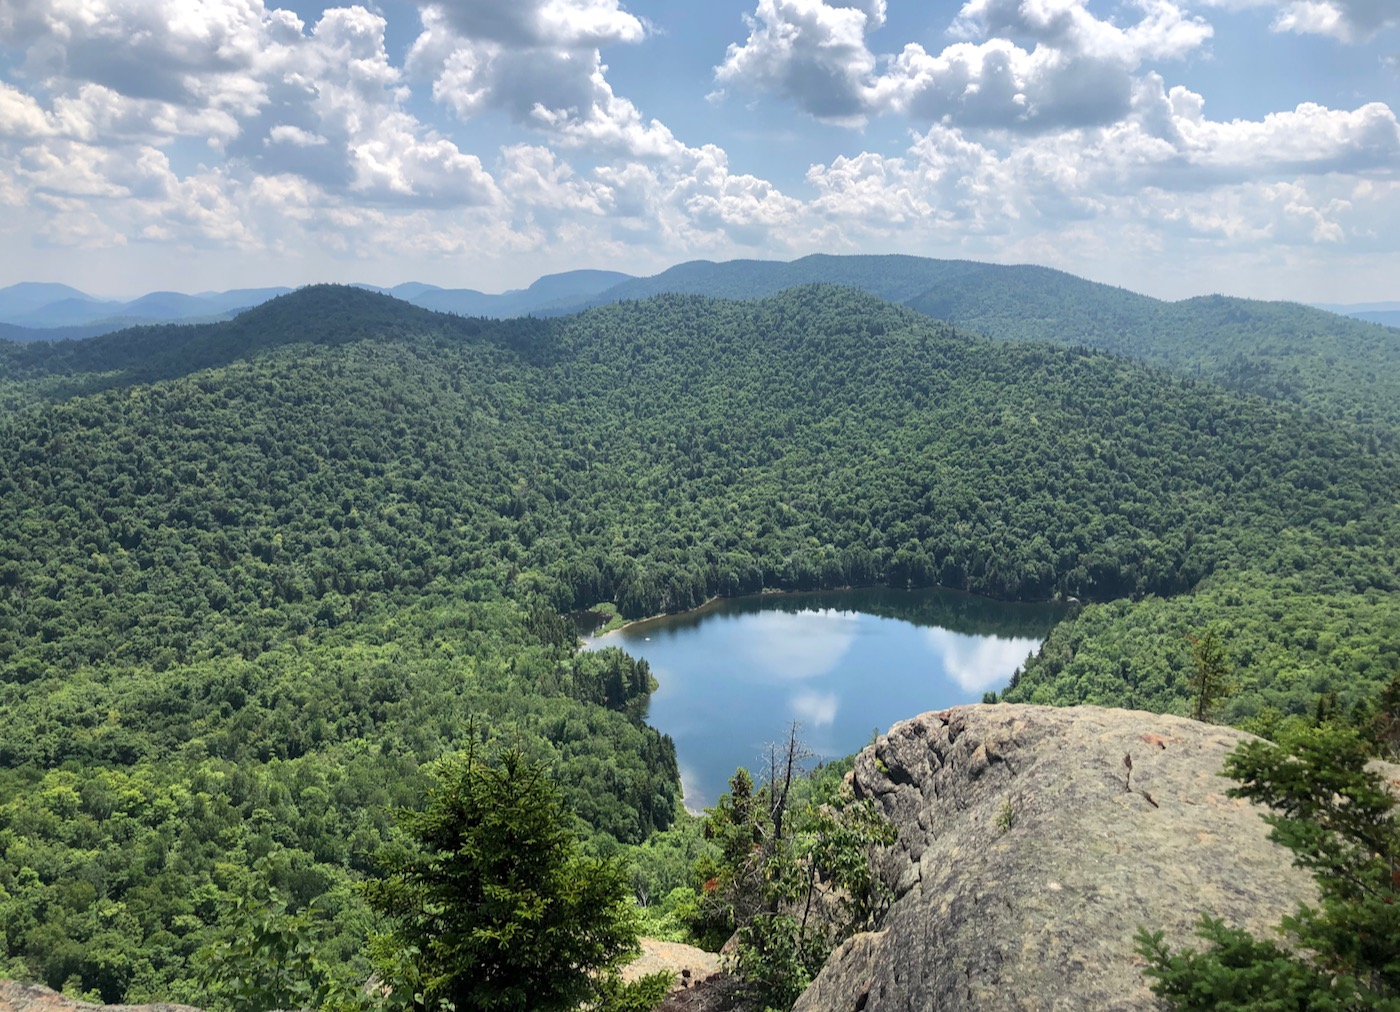 View from Peaked Mountain